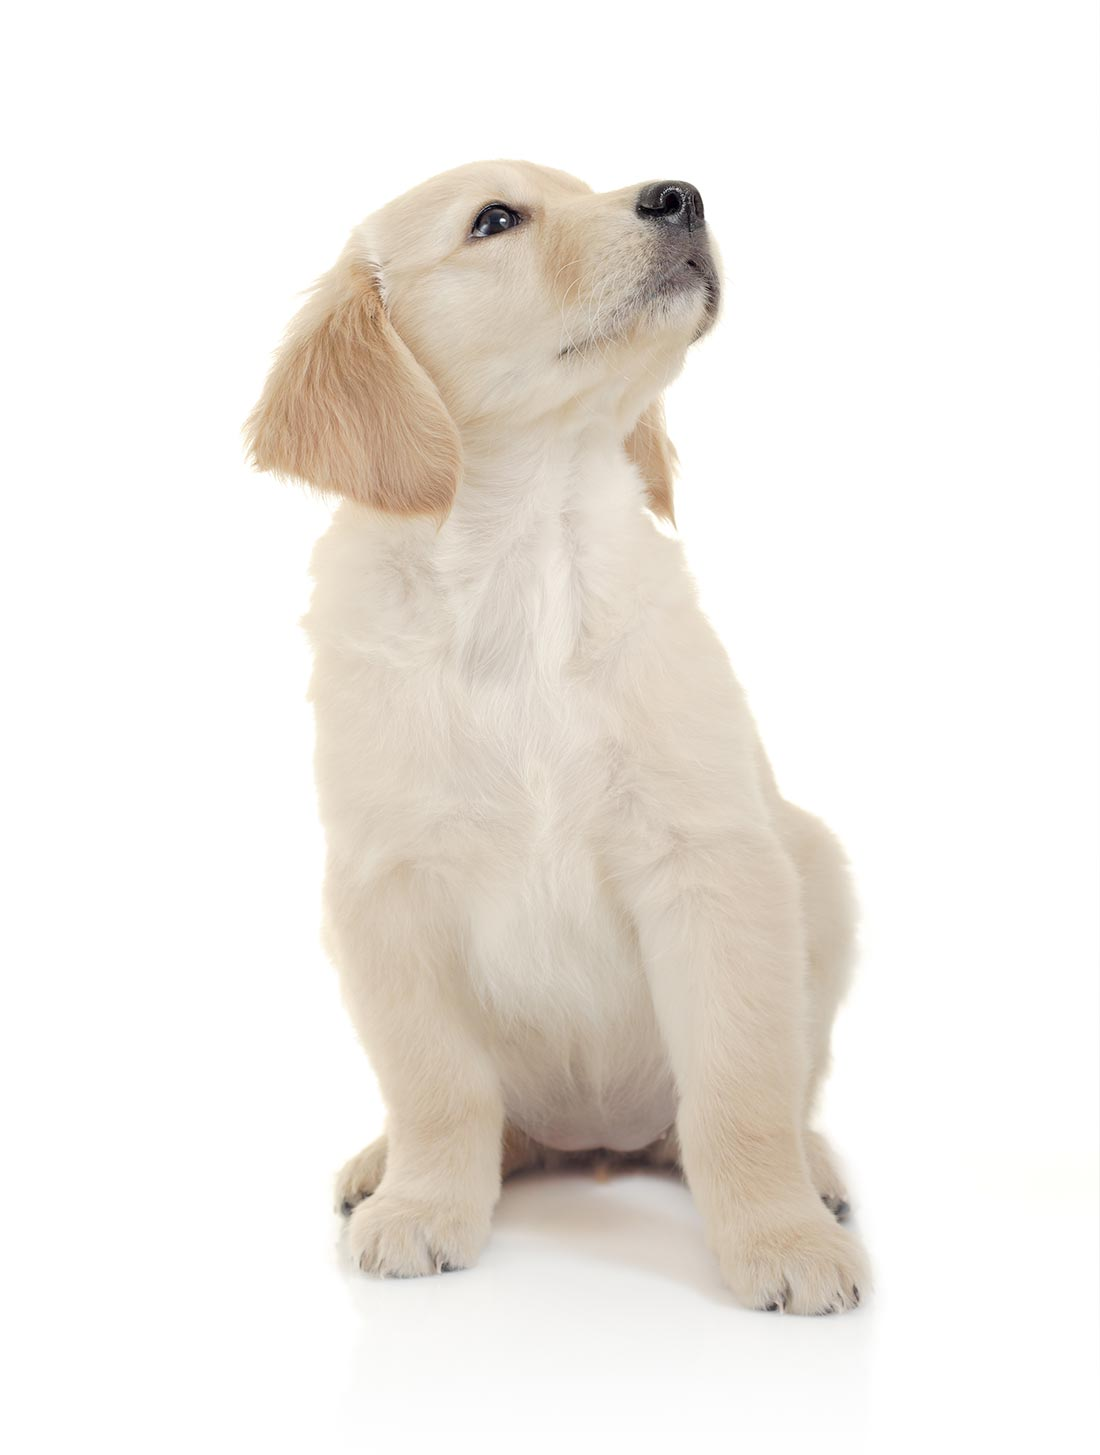 Curious puppy against white background